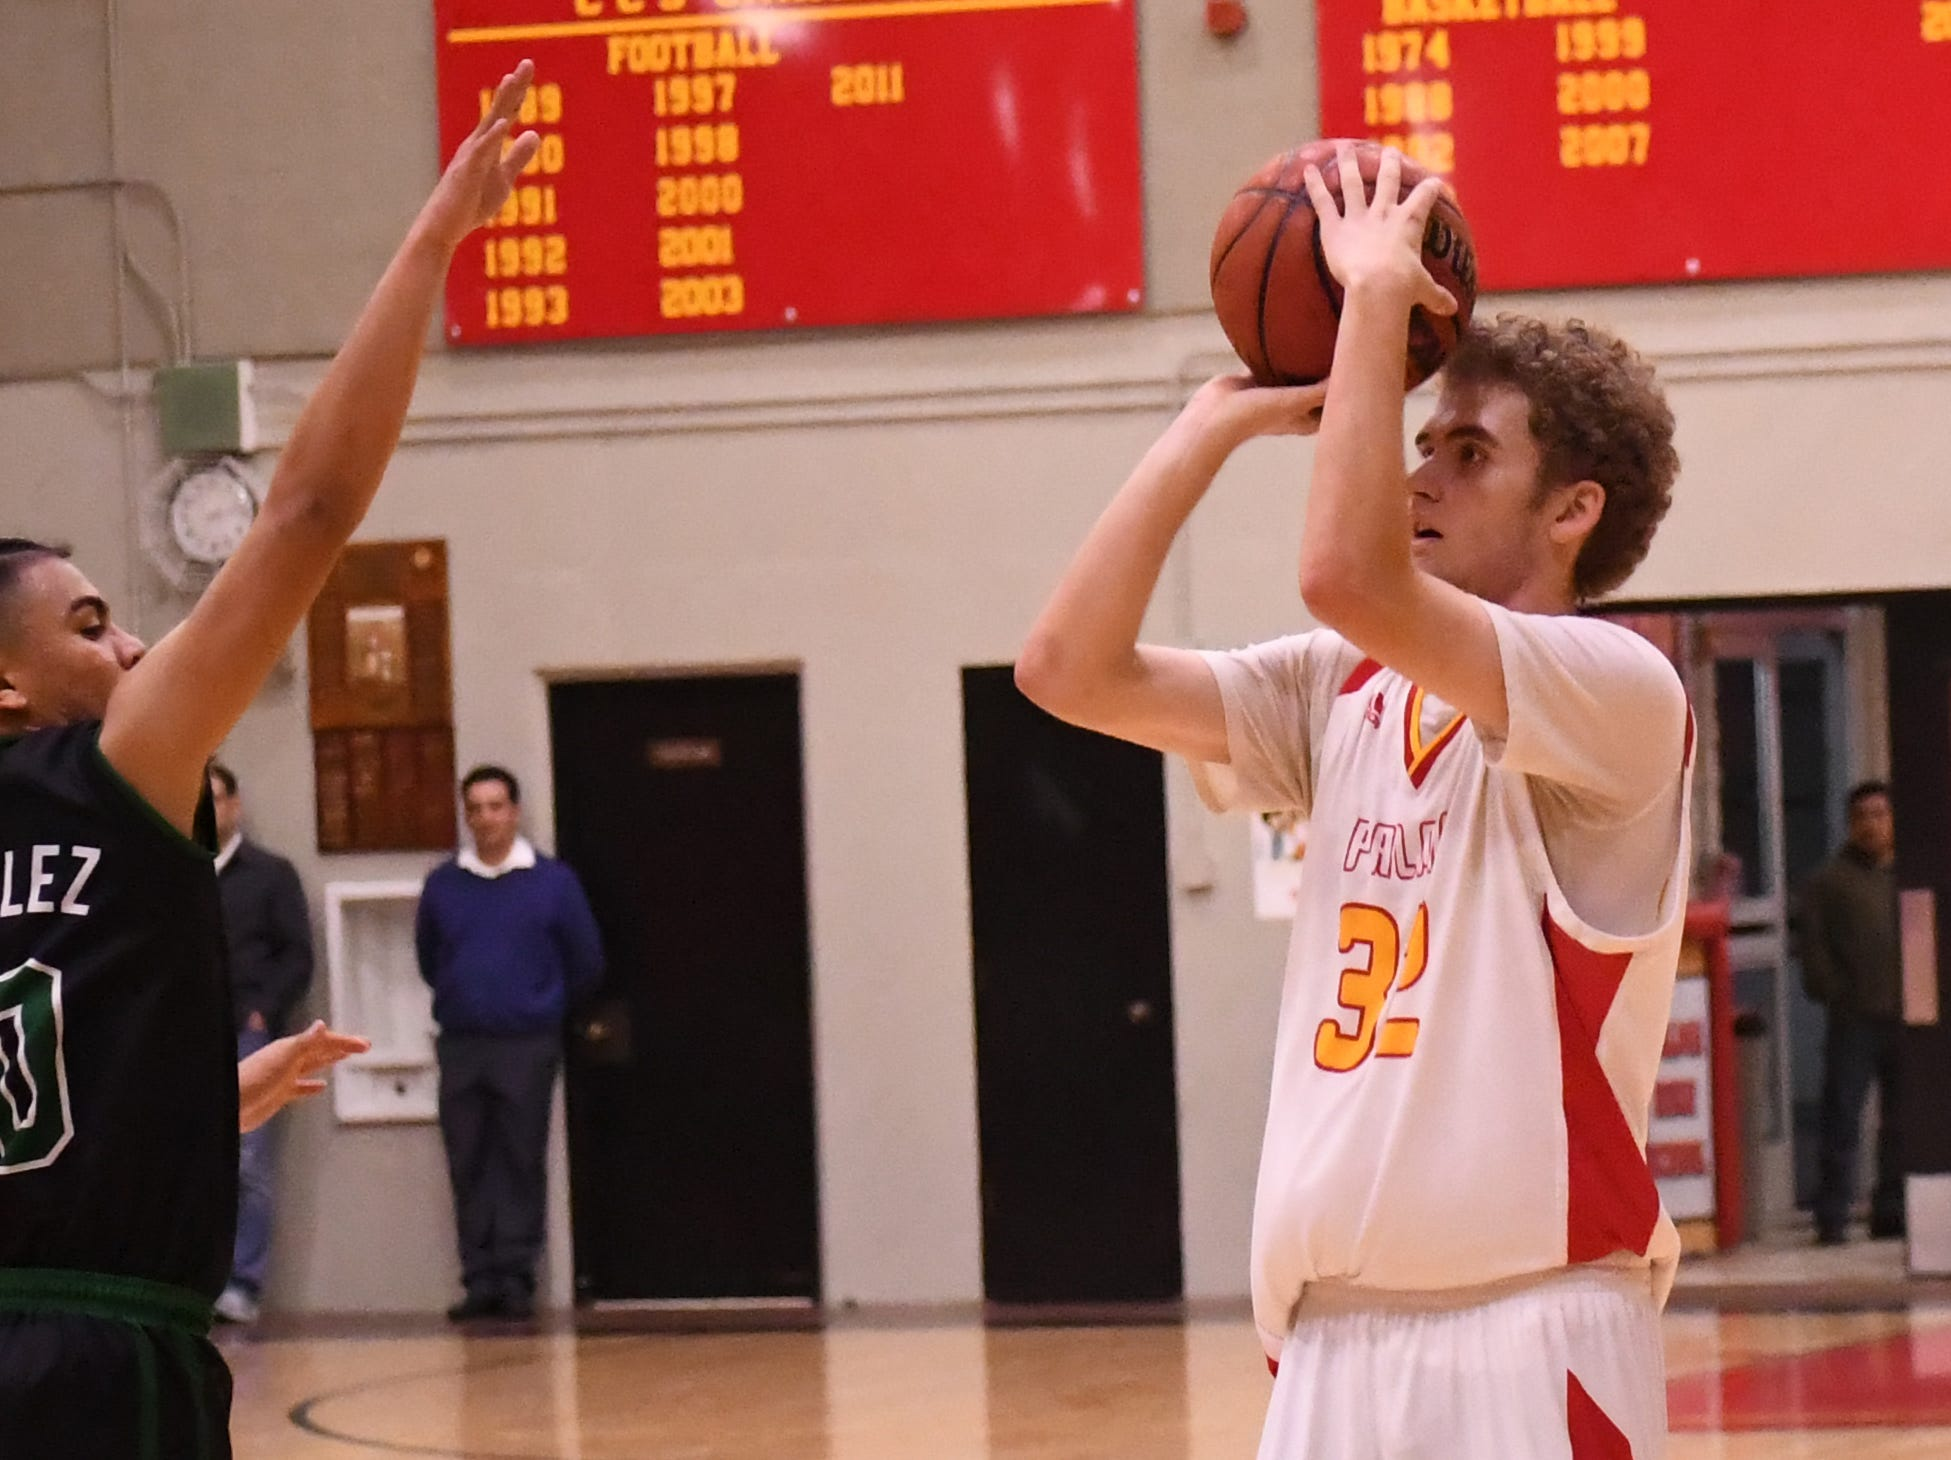 Palma forward Colin Neff (32) readies to release a 3-pointer in the face of defense from Alisal guard Vincent Gonzalez (10).